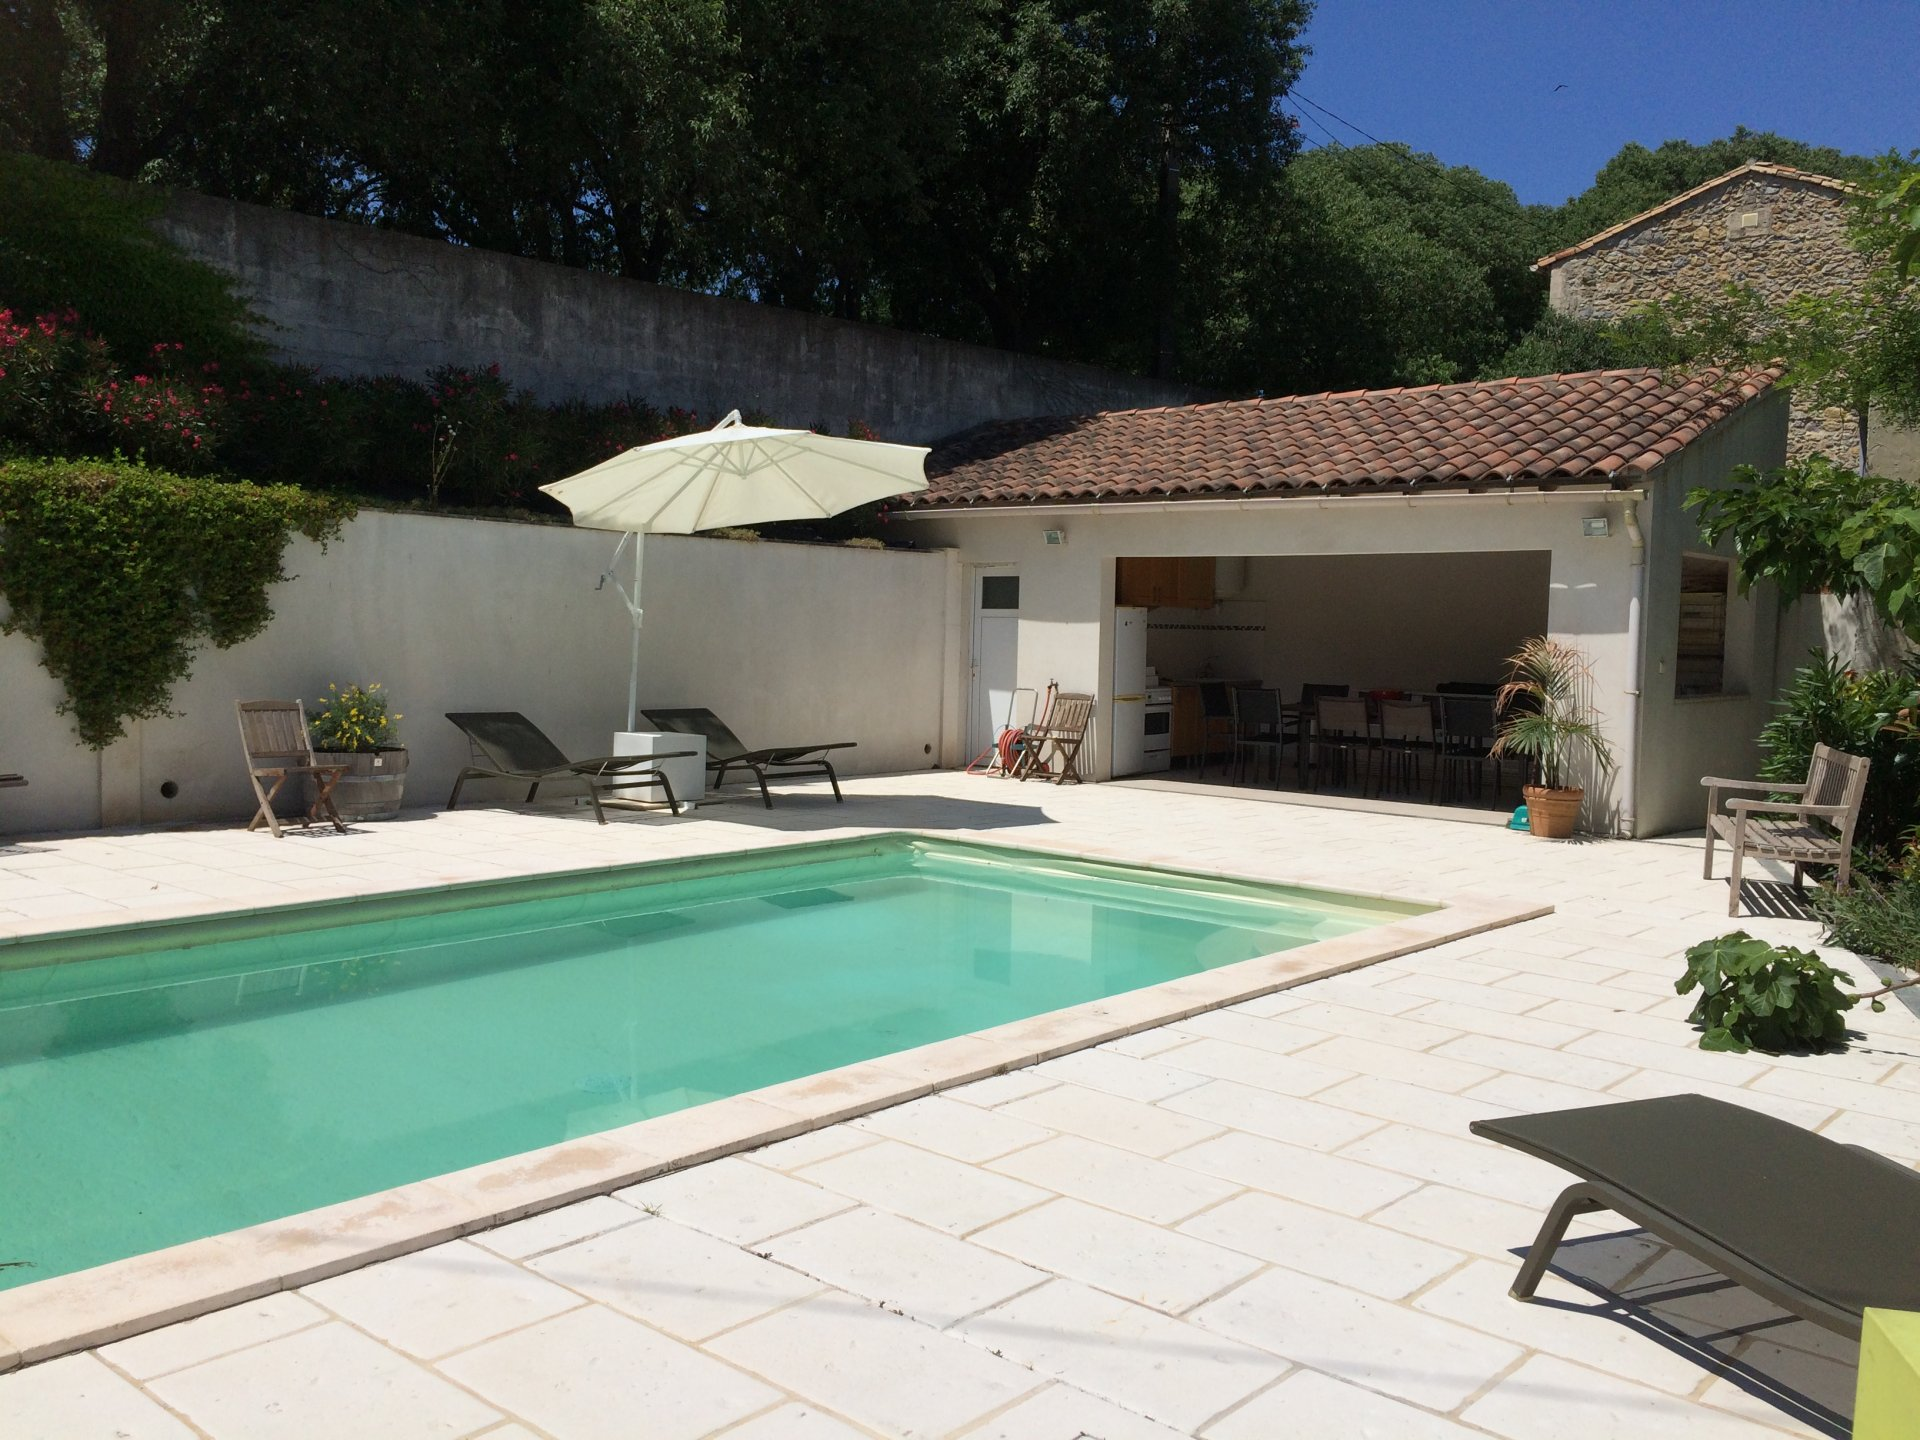 Beautiful house with quality amenities close to Arles historic center